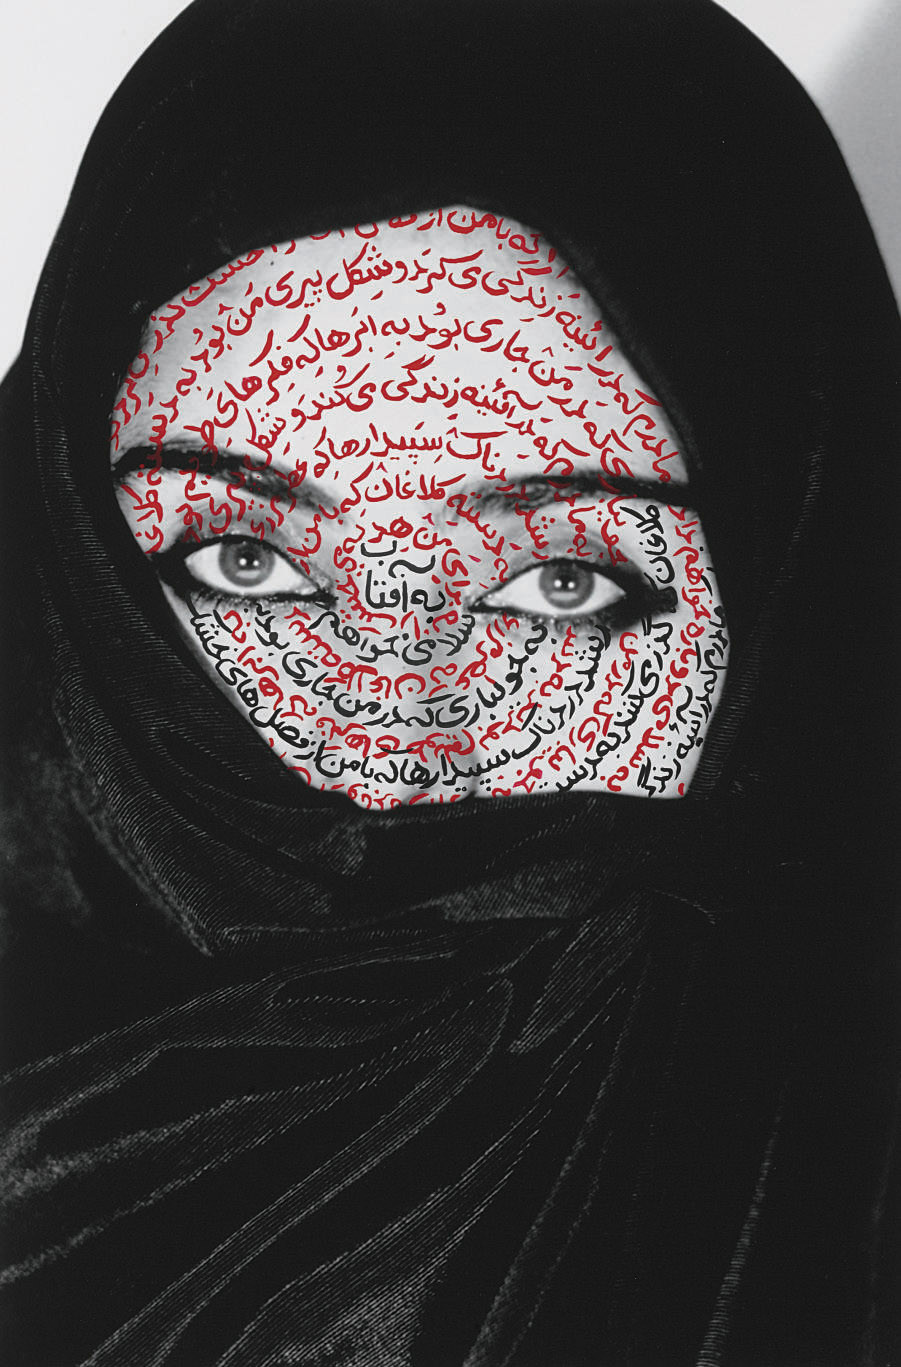 The Moca Photography Portfolio by Shirin Neshat with urdu text on female with Hijab and piercing eyes